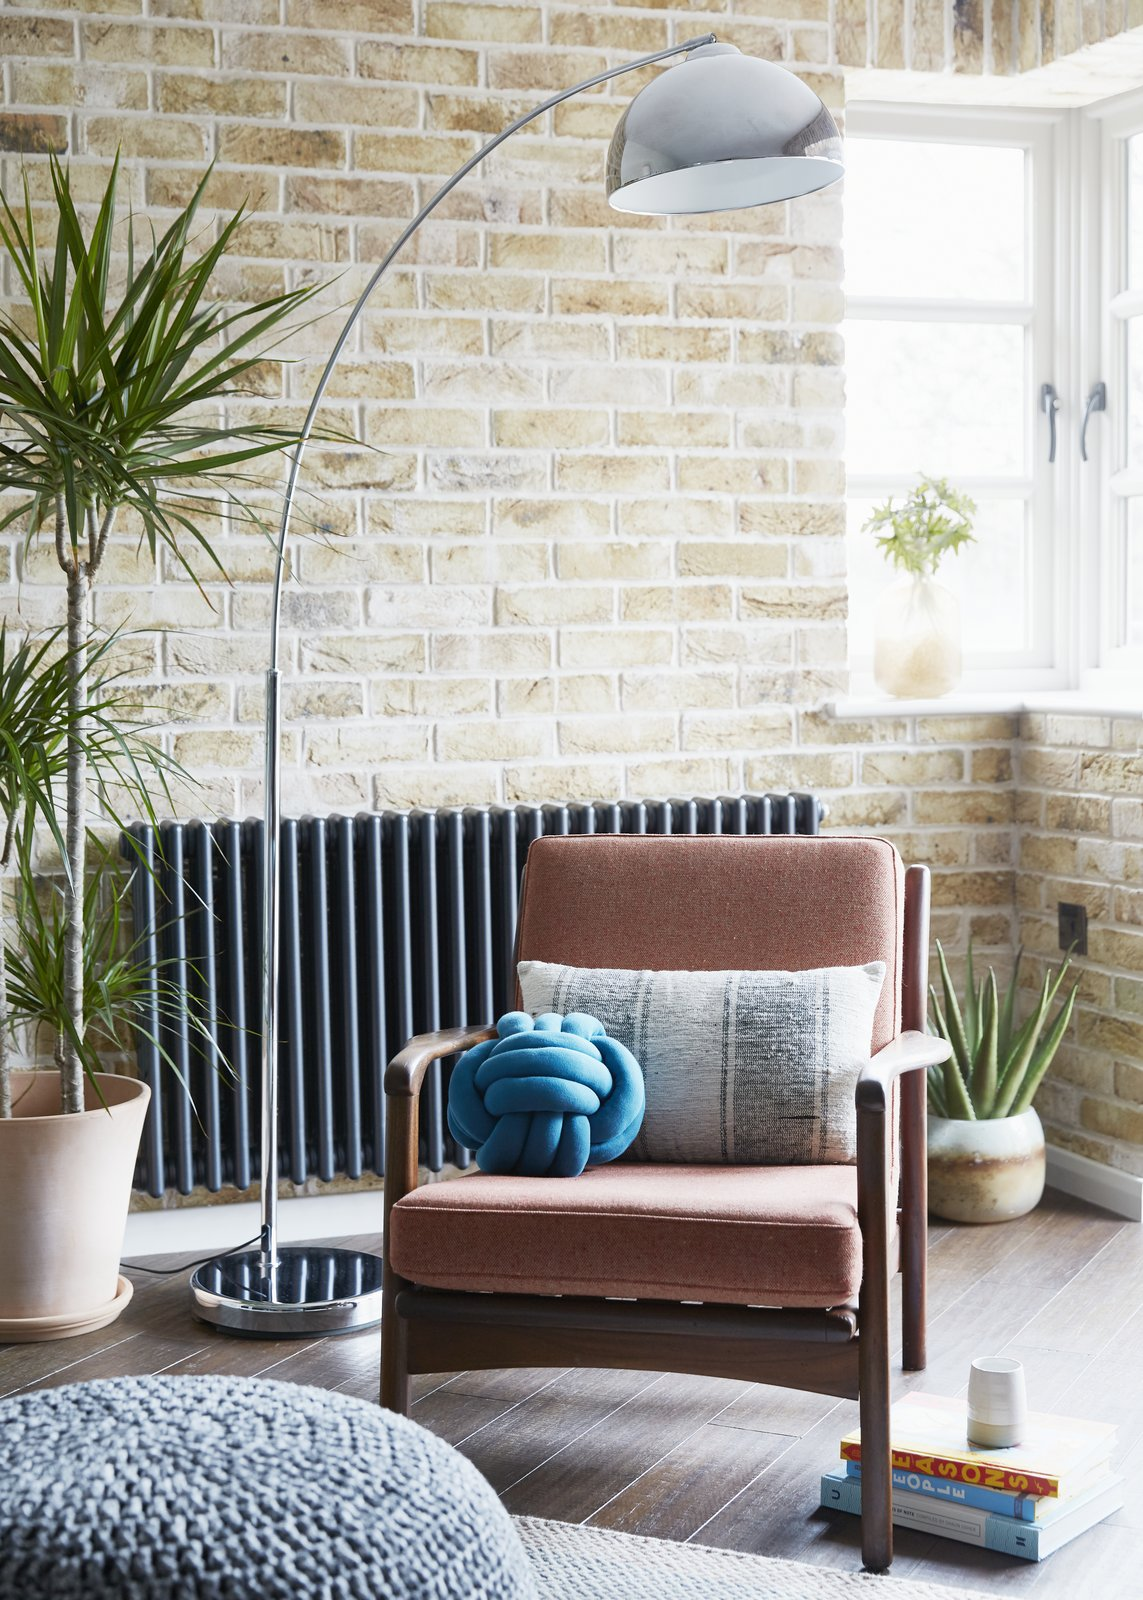 Living, Bamboo, Chair, and Floor A vintage Danish teak armchair sits against a London stocks brick wall.  Best Living Floor Bamboo Photos from Artillery House